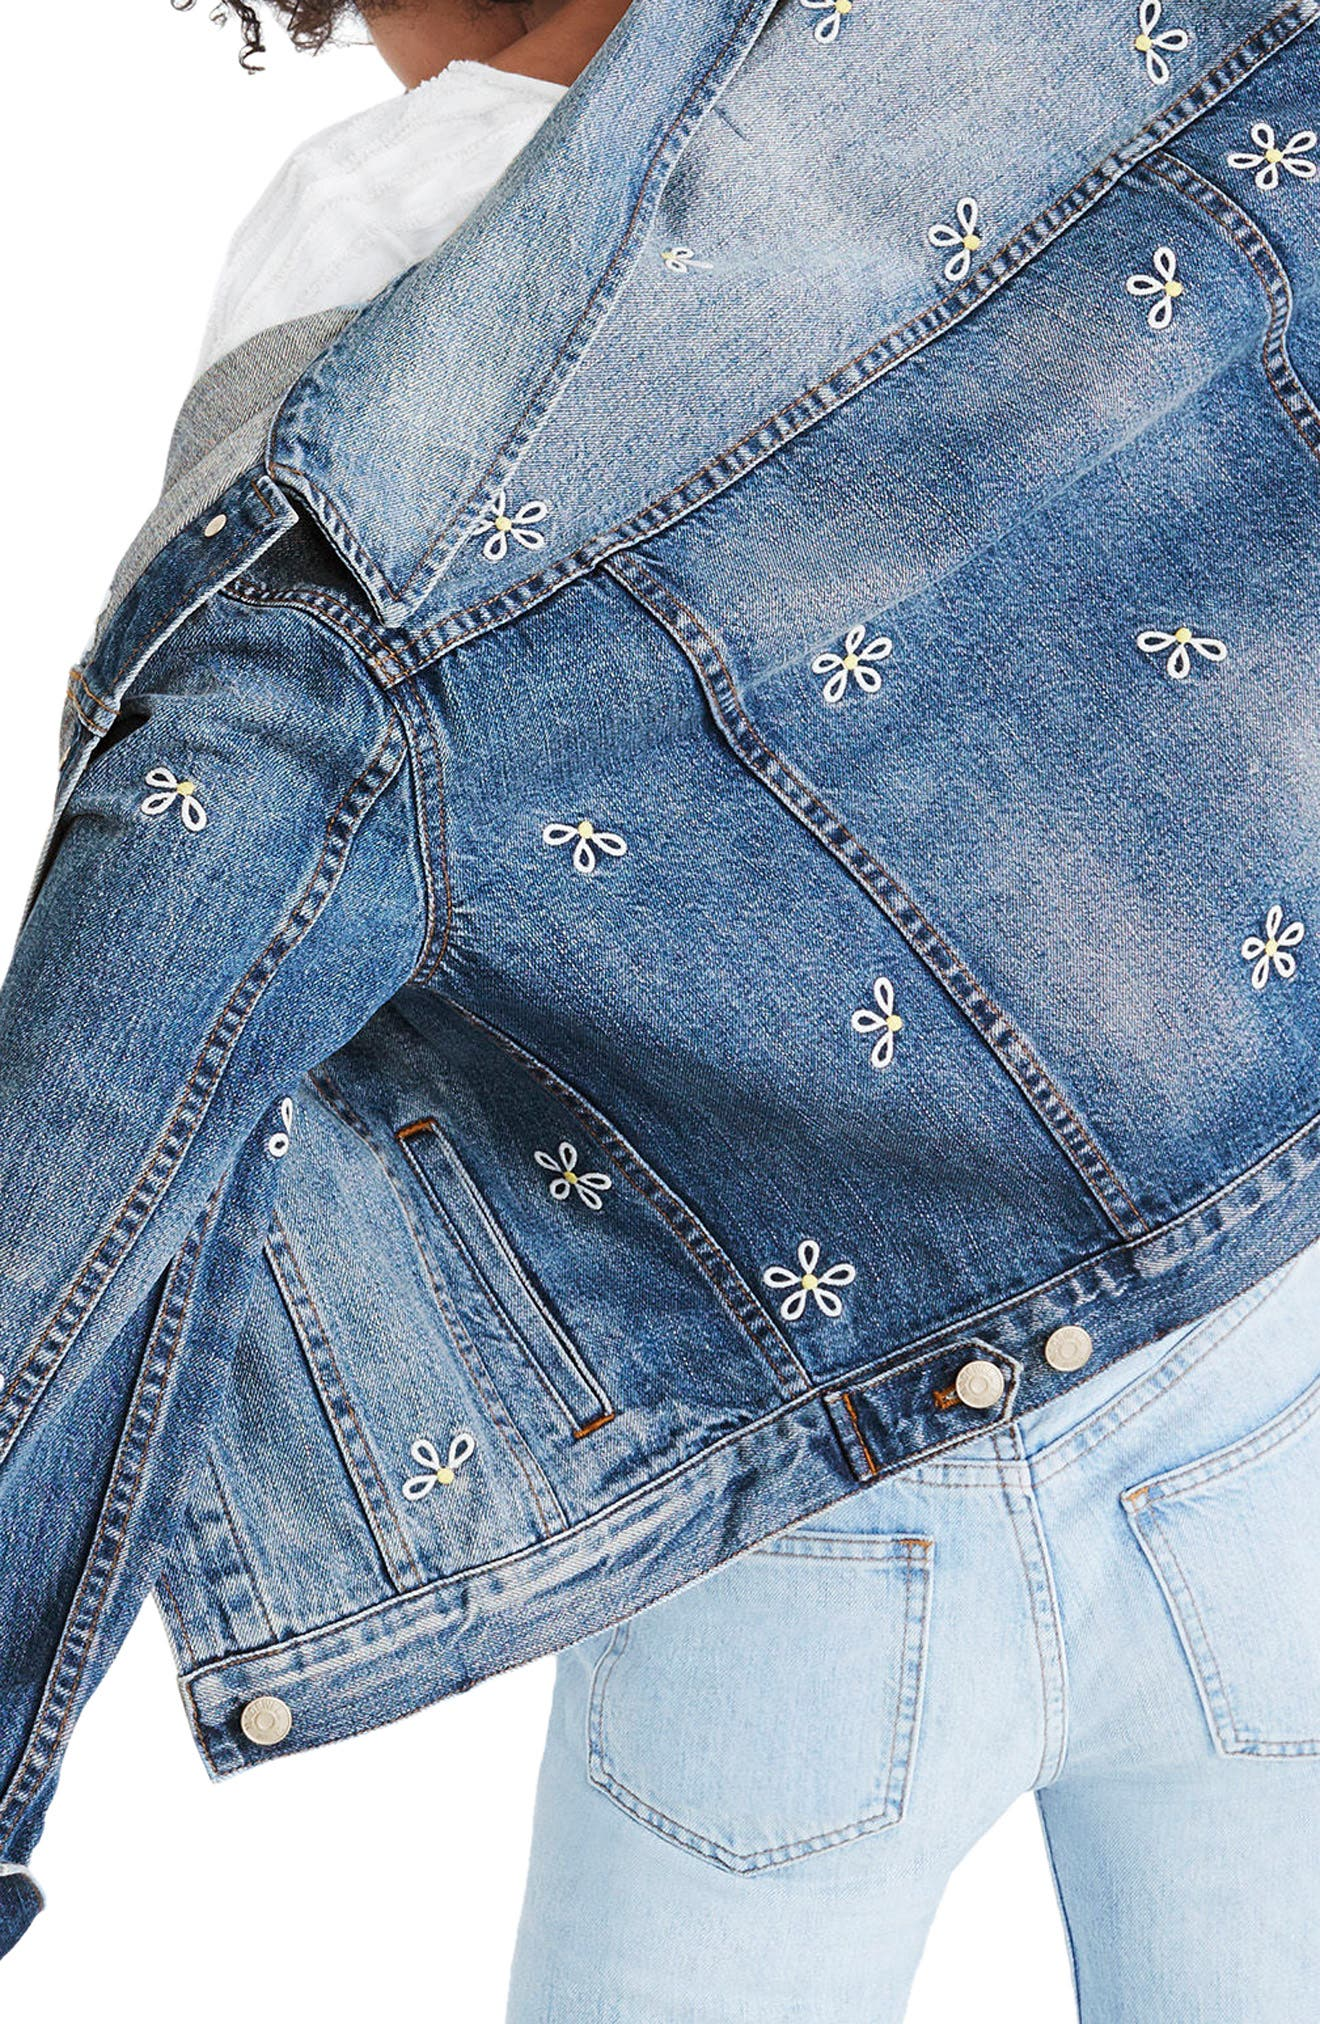 Daisy Embroidered Boxy Crop Denim Jacket,                             Alternate thumbnail 2, color,                             400